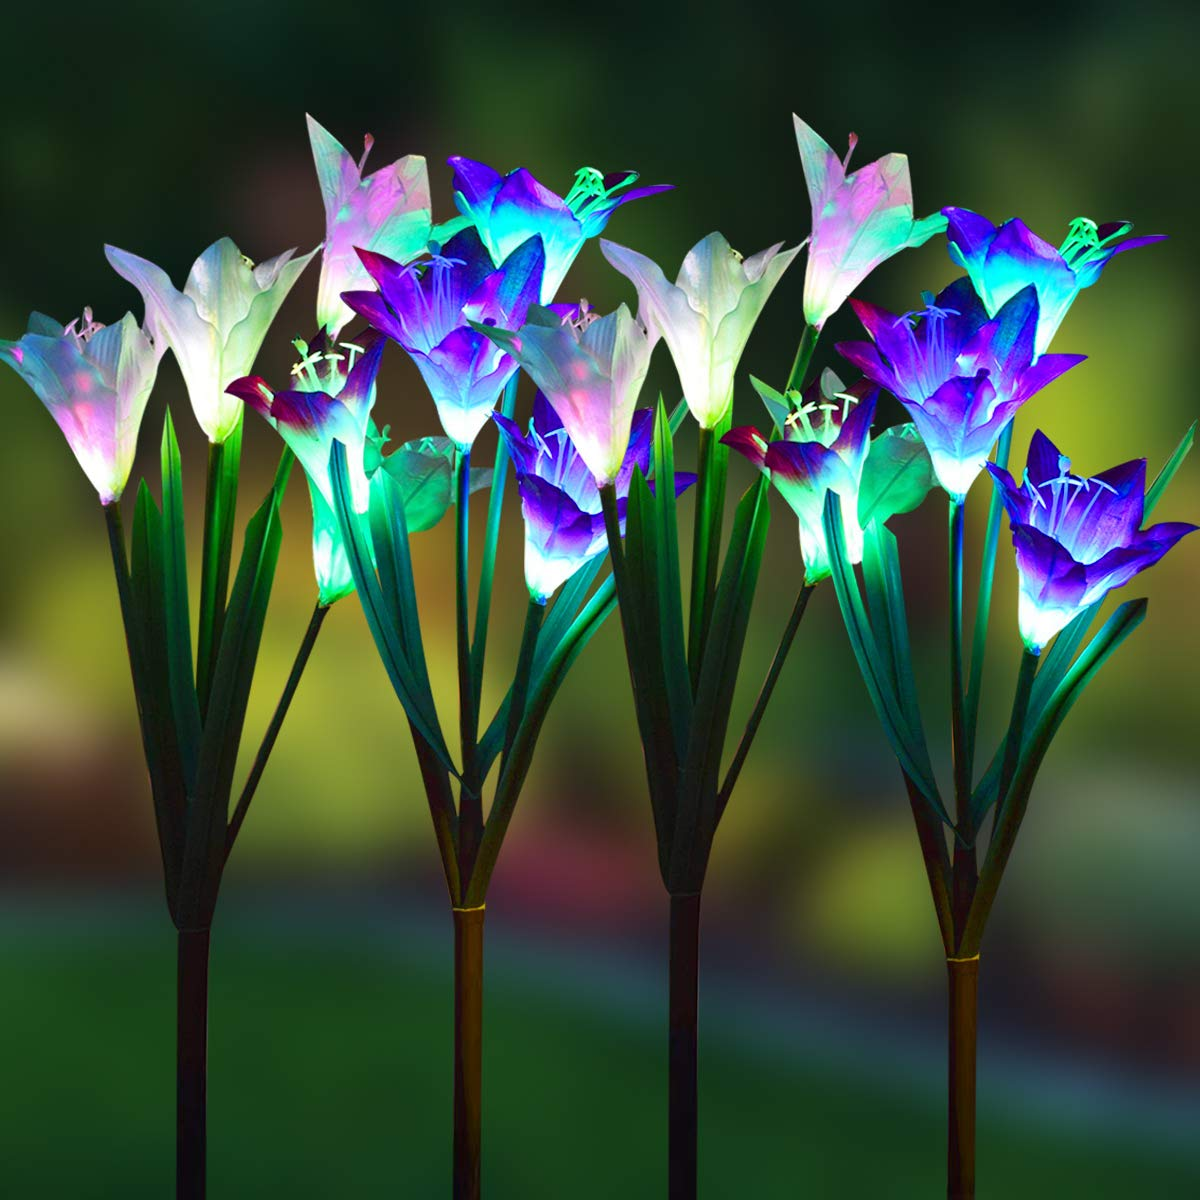 WOHOME Outdoor Solar Garden Stake Lights,4 Pack Solar Powered Lights with 16 Lily Flower, Multi-Color Changing LED Solar Landscape Lighting Light for Garden, Patio